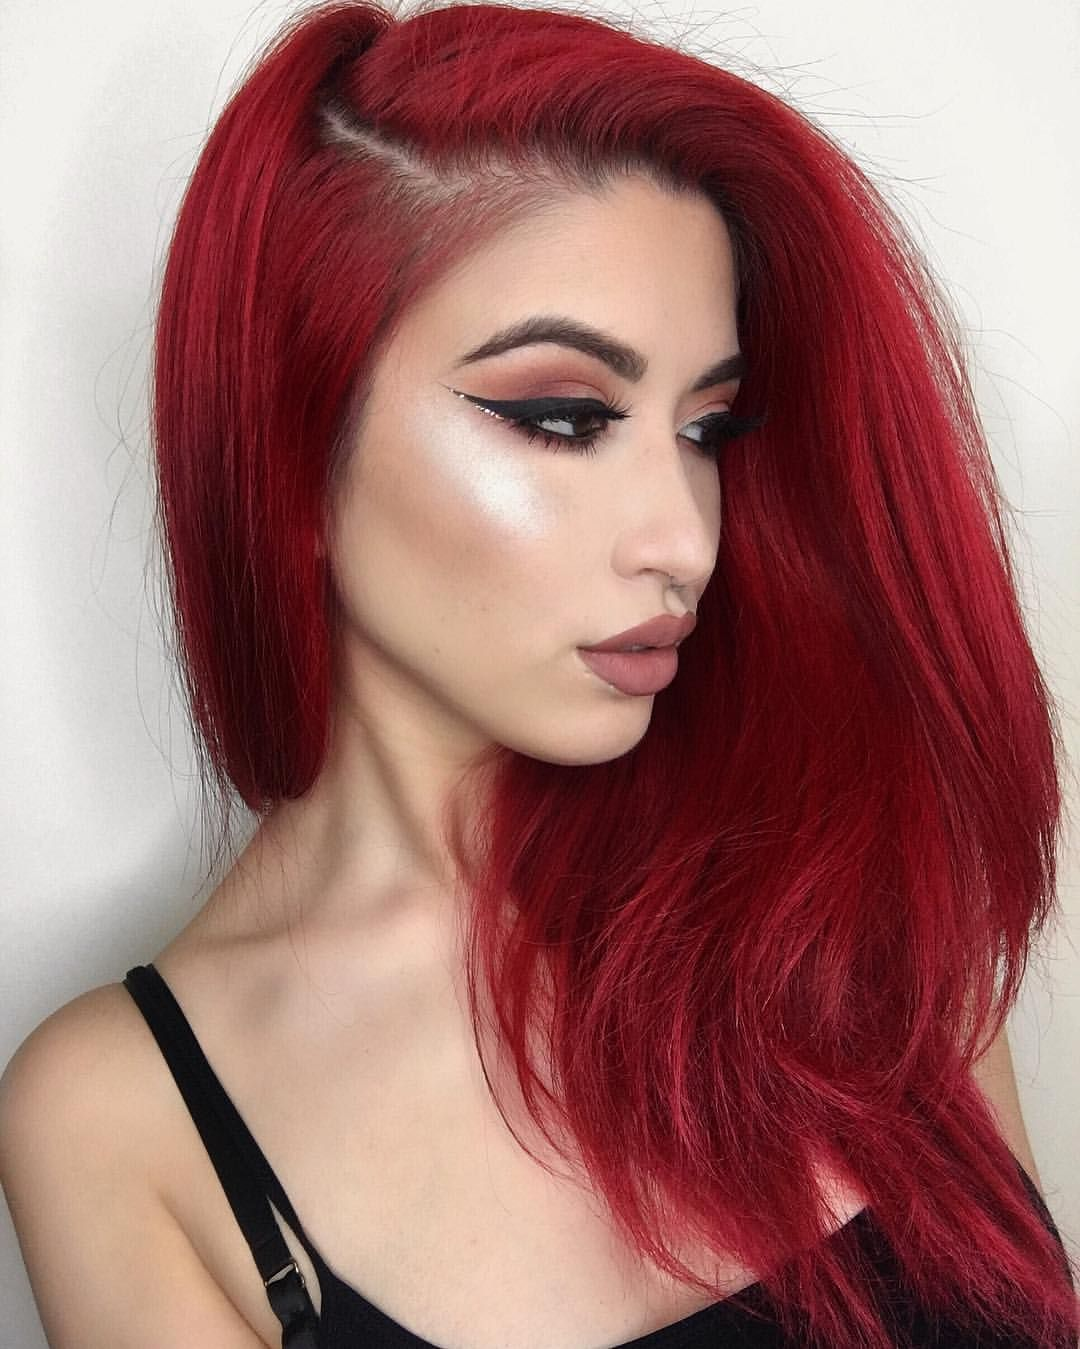 bright red hair after trailblazer tresses? add fiery tones to your